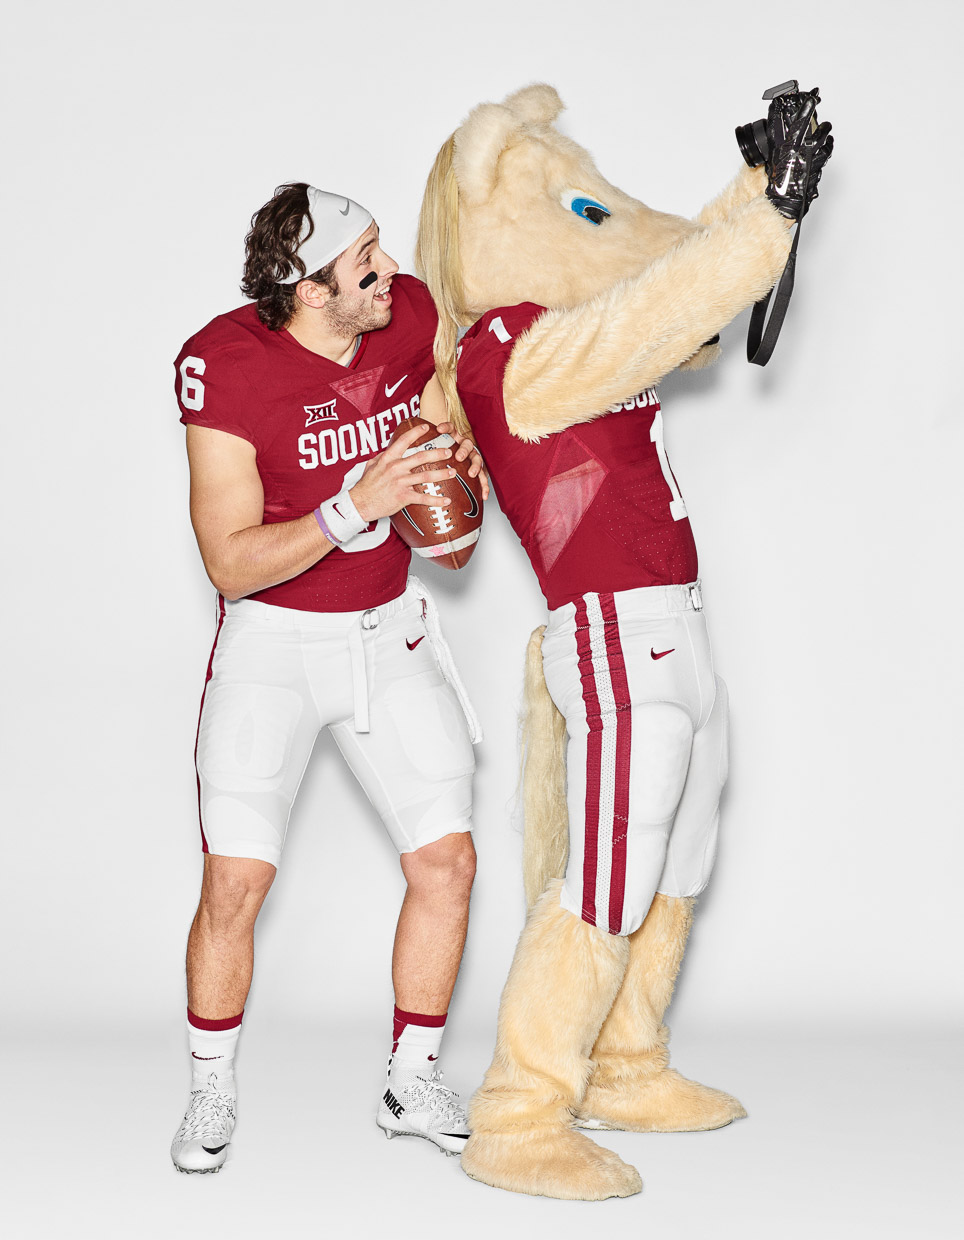 03-ESPN_Baker_Mayfield_shot02-196_03a-RGB